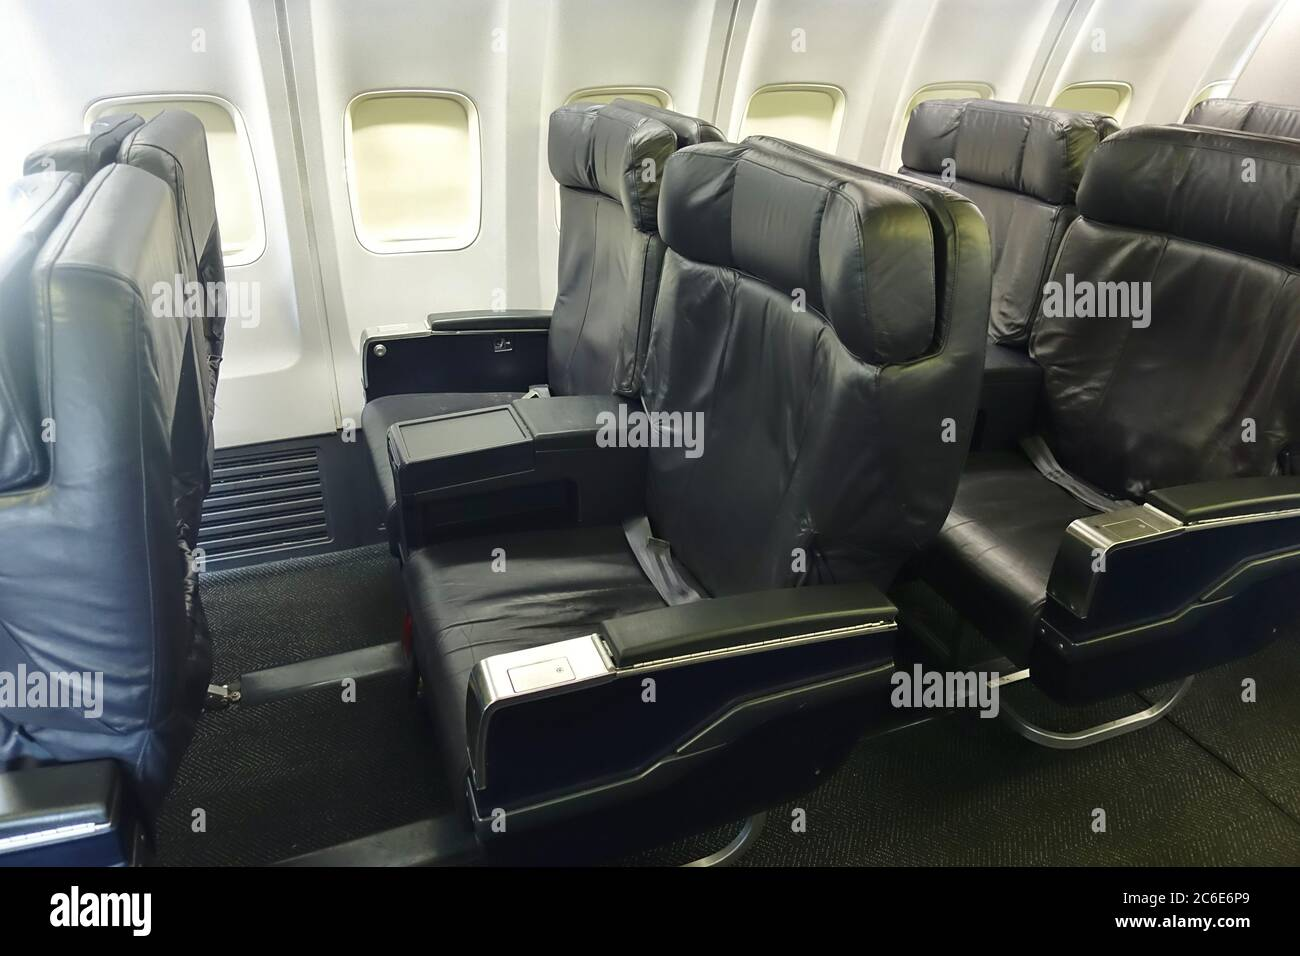 Guadalajara Mexico 4 Jul 2020 View Of Rows Of Seats In An Empty Business Class Cabin On A Boeing 737 From United Airlines Ua Stock Photo Alamy